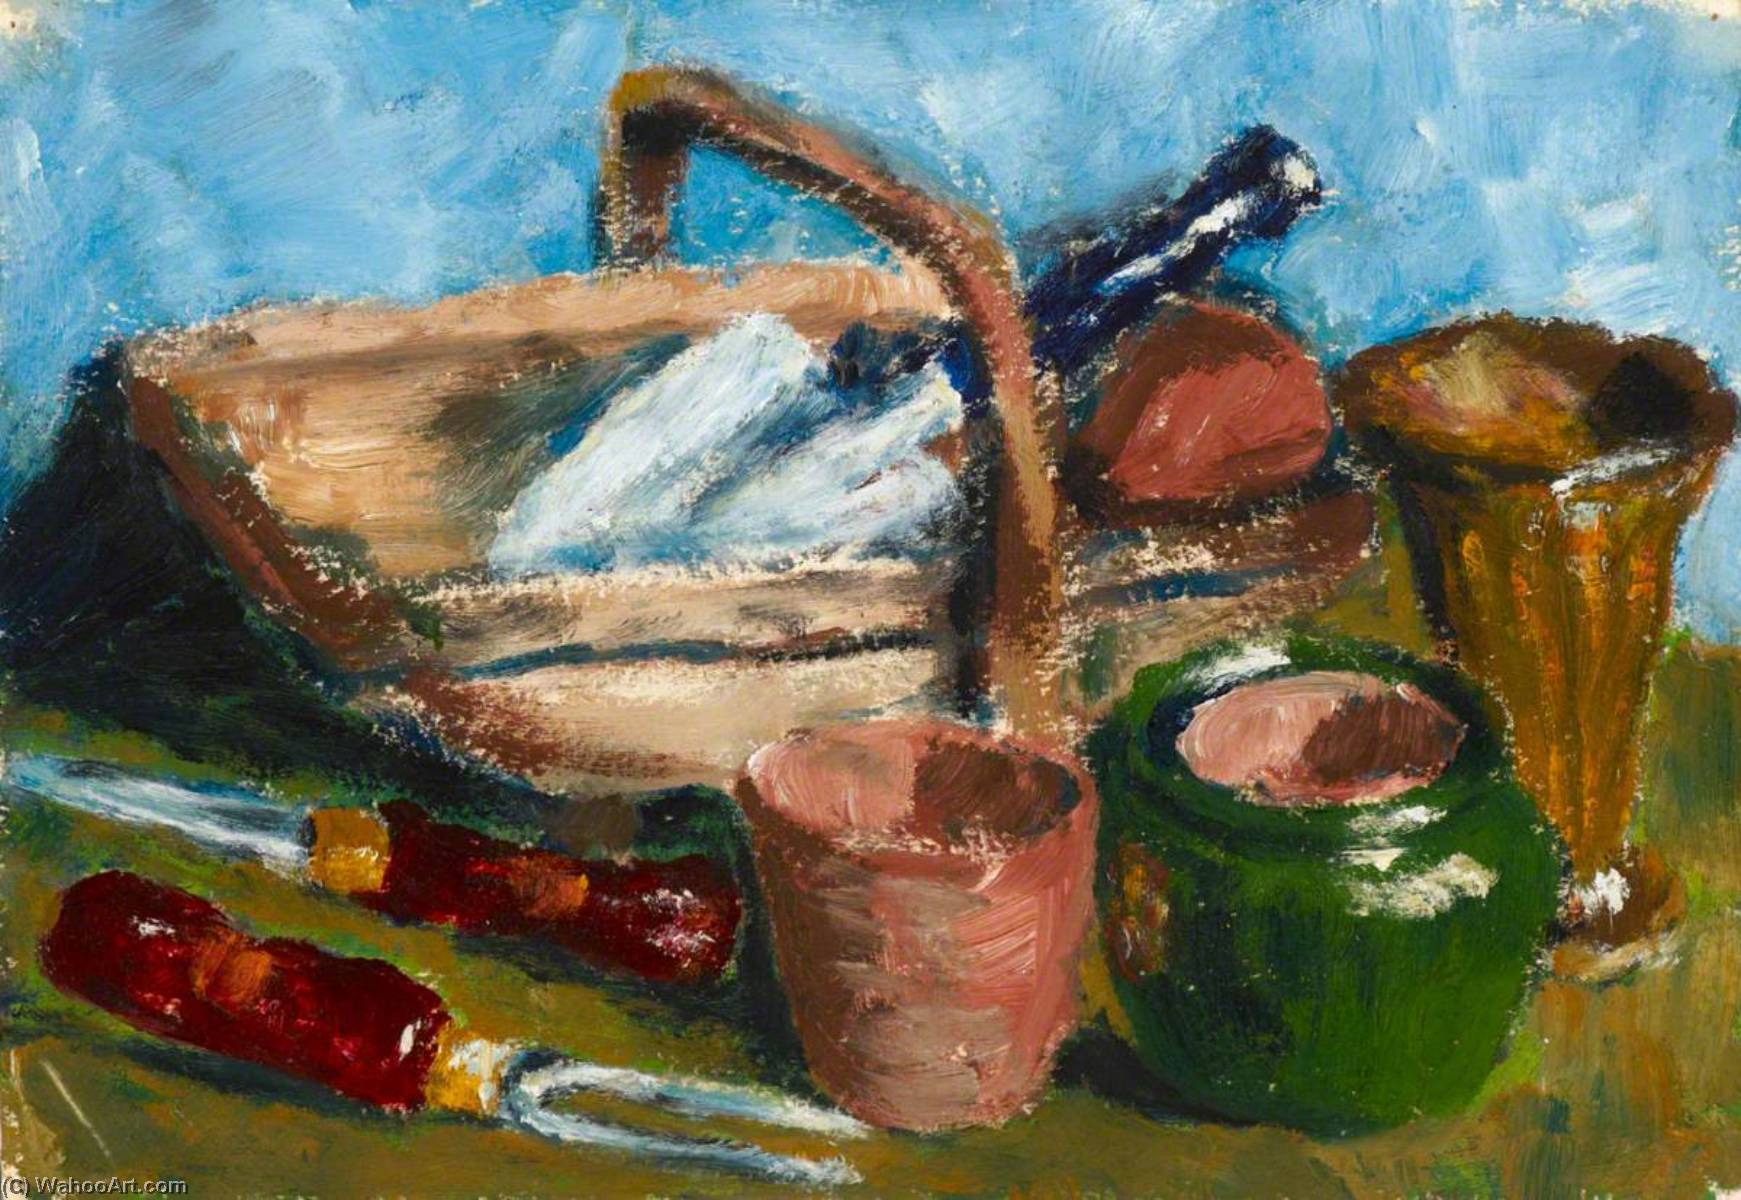 Garden Tools by Myfanwy Baker | Oil Painting | WahooArt.com